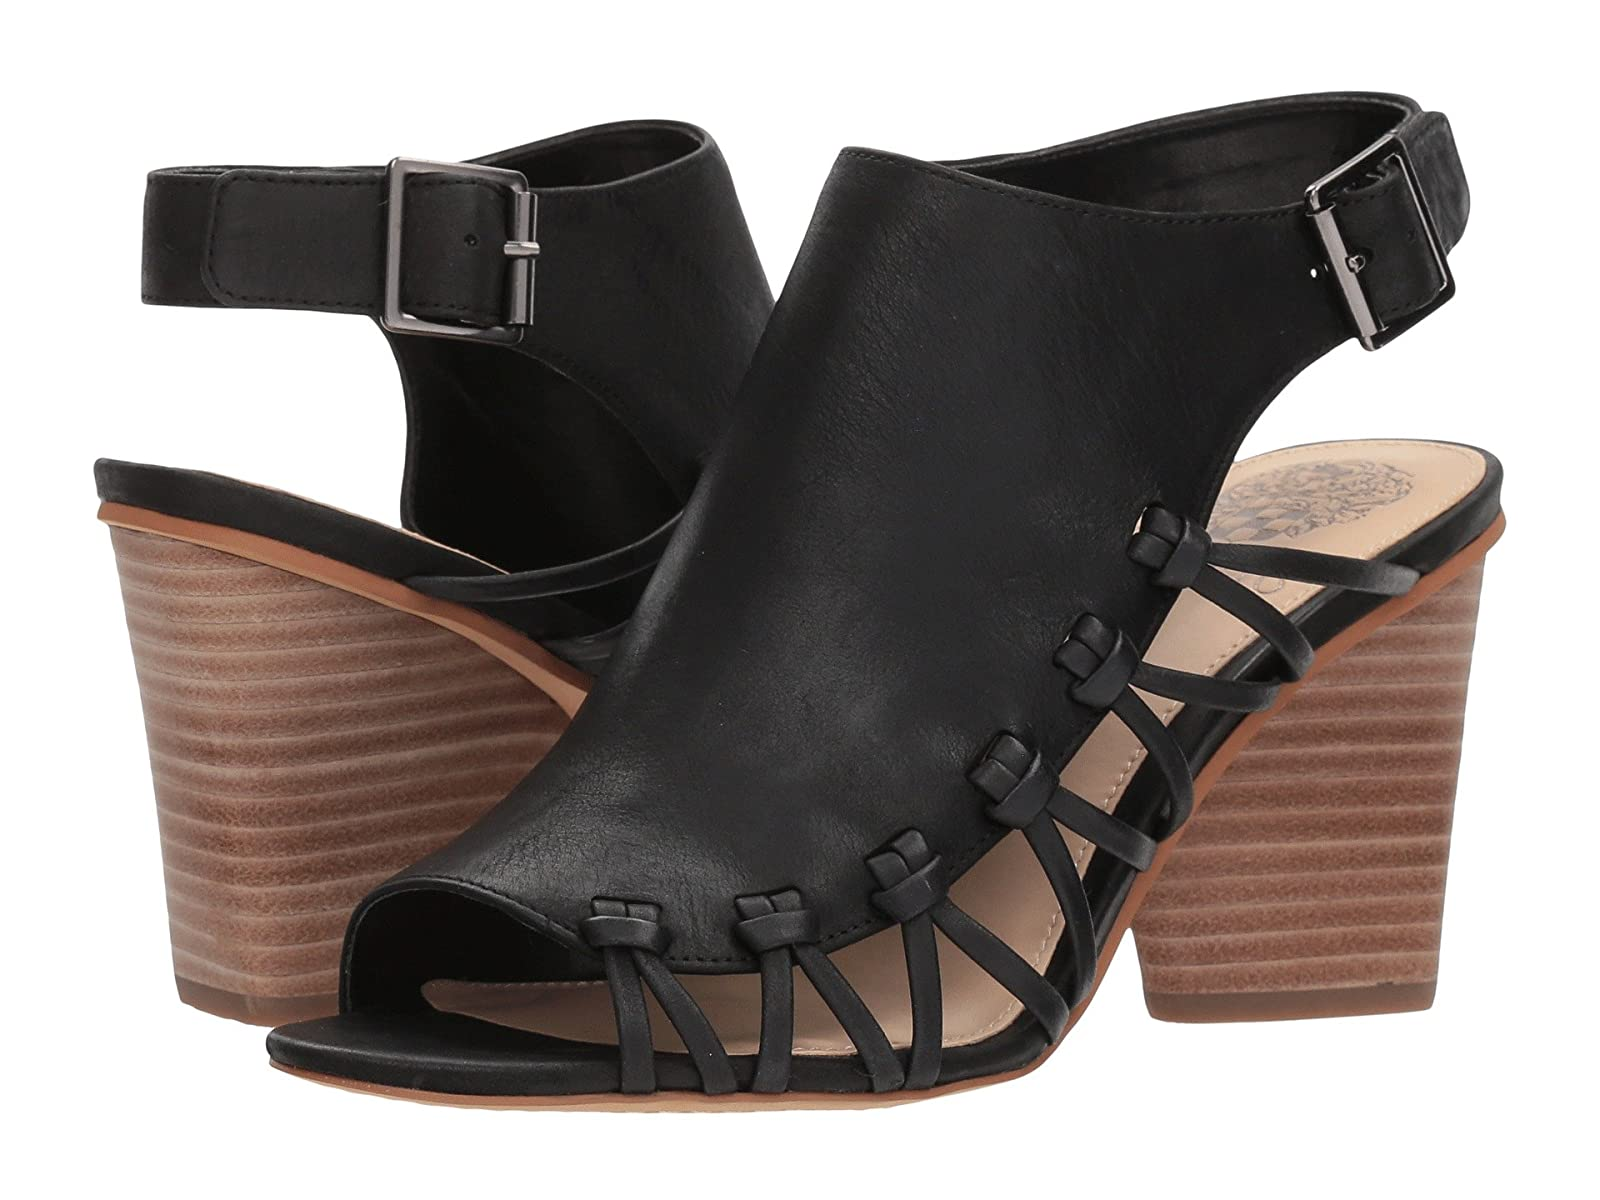 Vince Camuto AnkaraCheap and distinctive eye-catching shoes